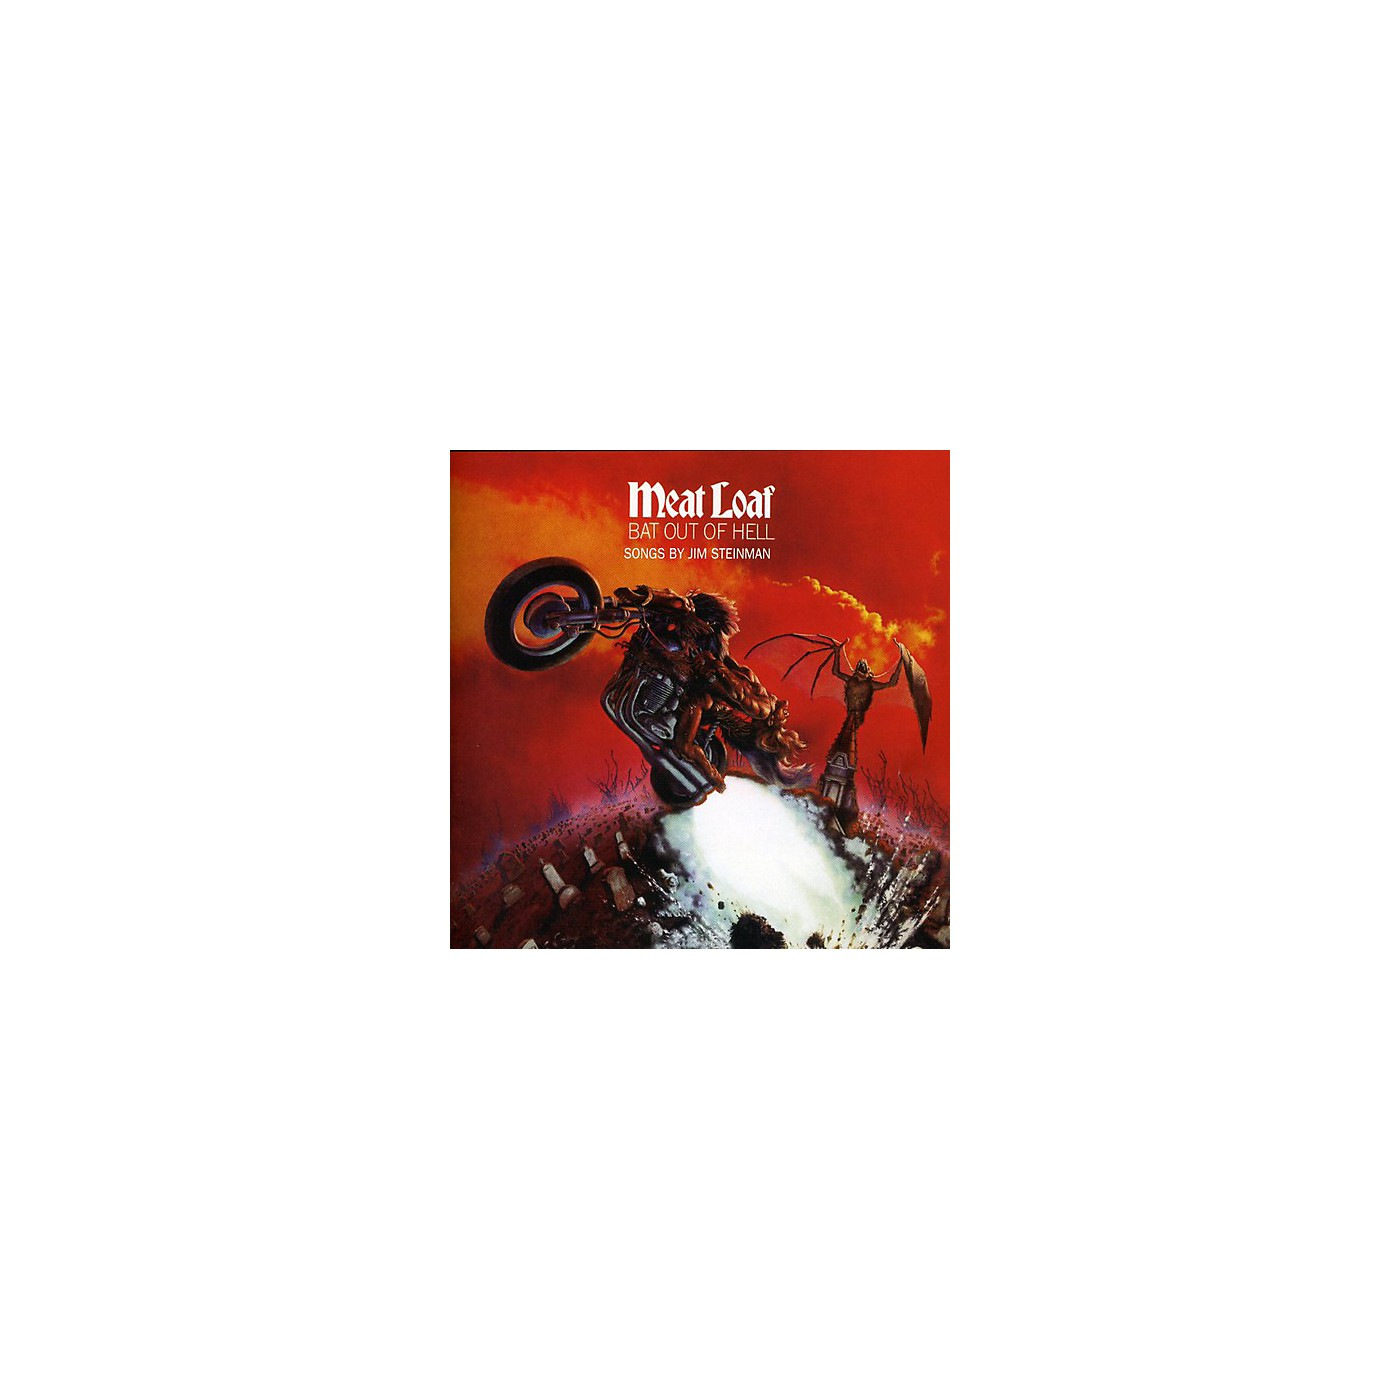 Alliance Meat Loaf - Bat Out of Hell (CD) thumbnail